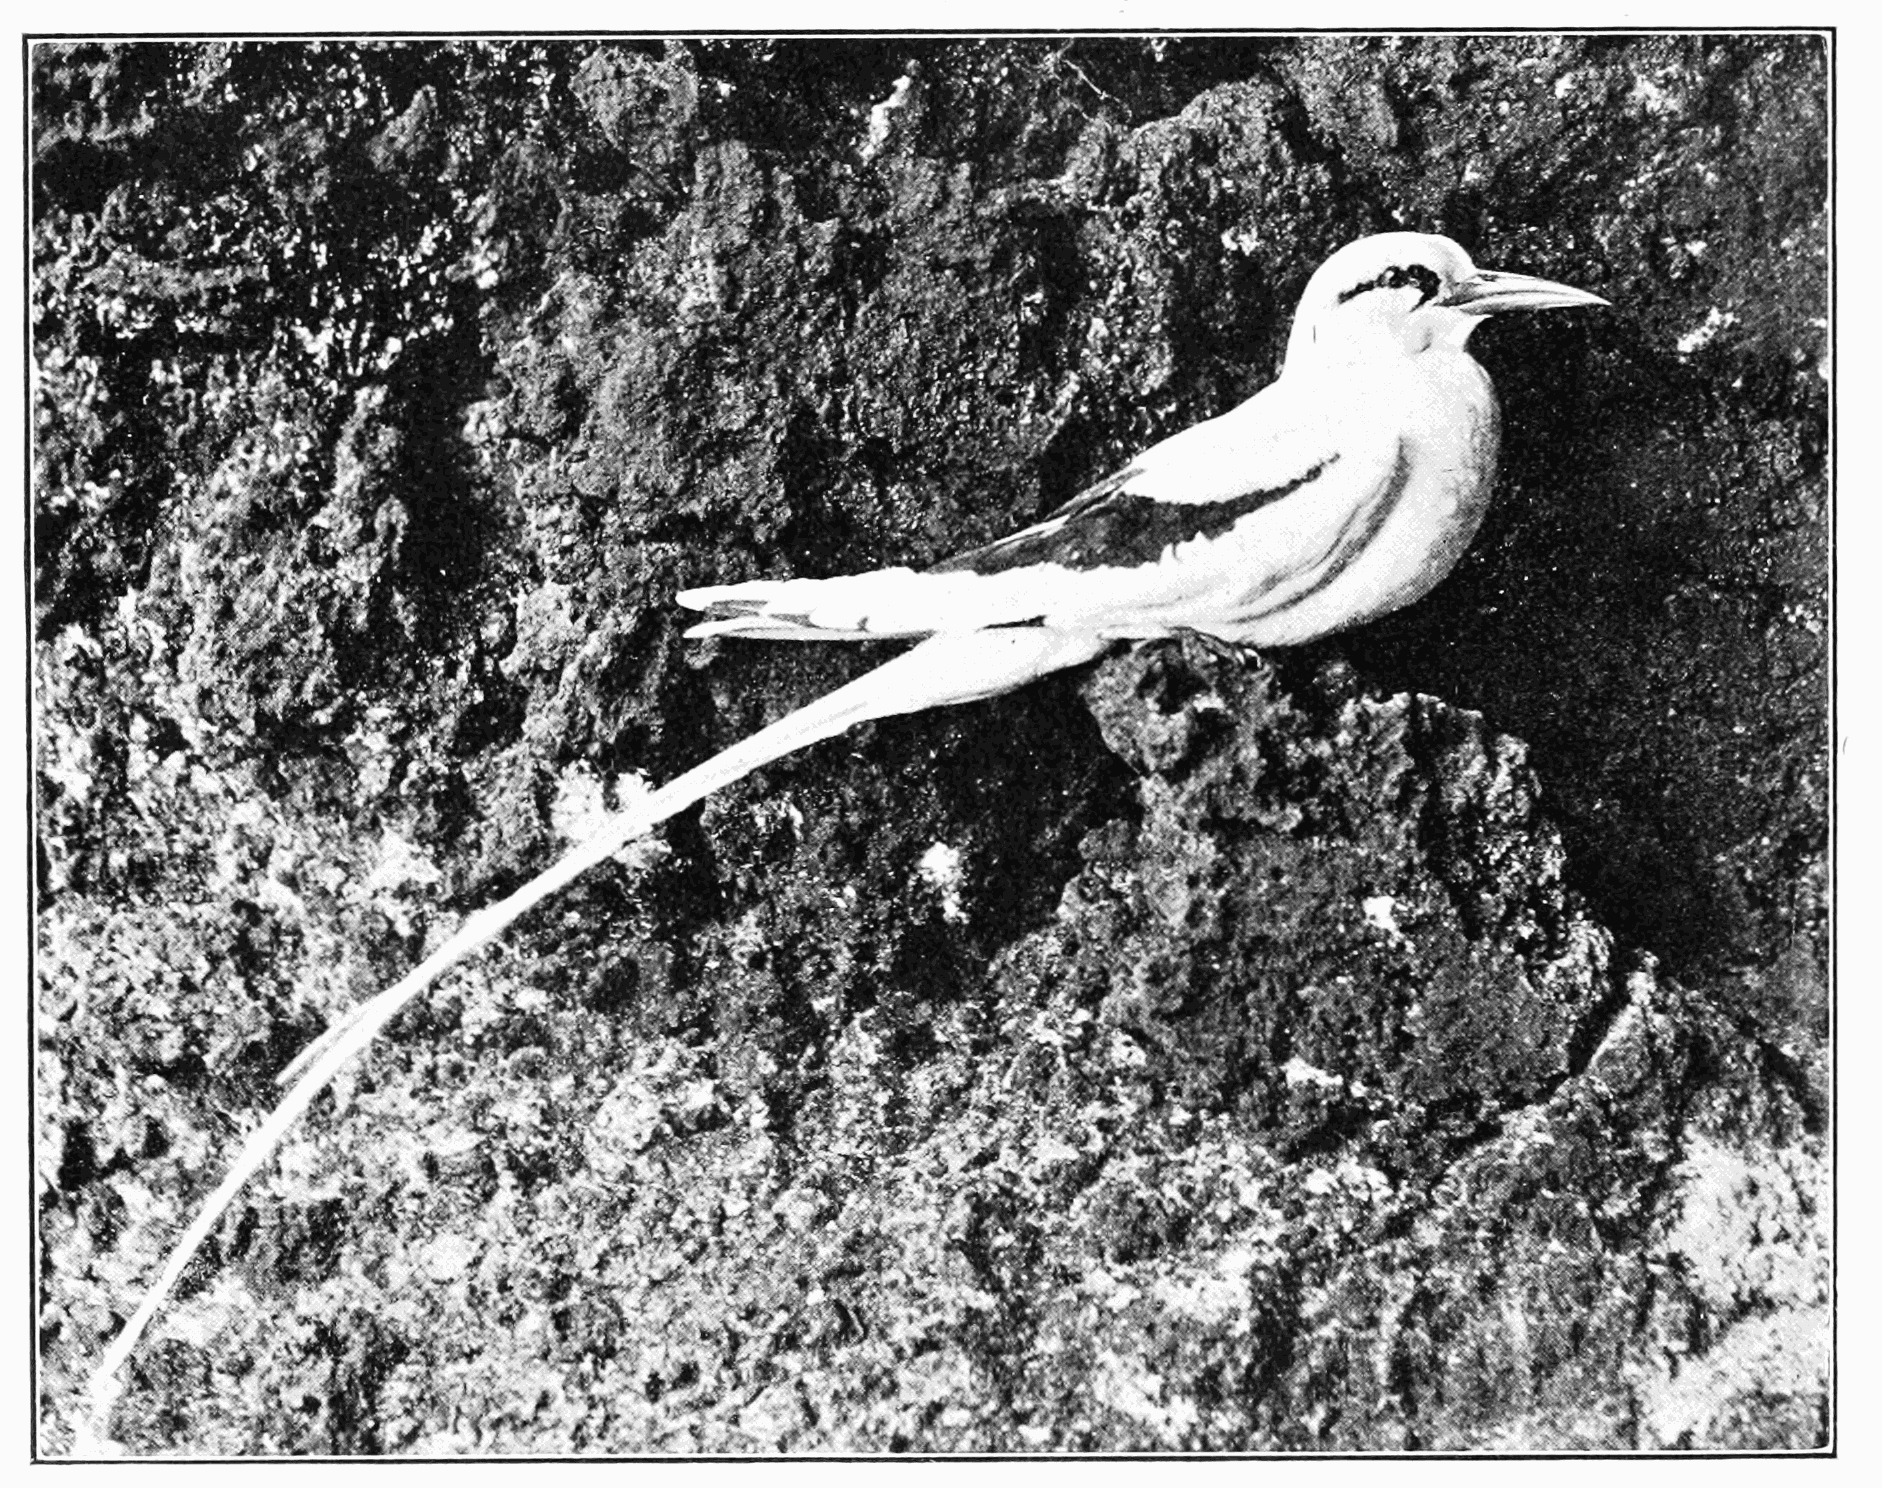 Image of White-tailed Tropicbird